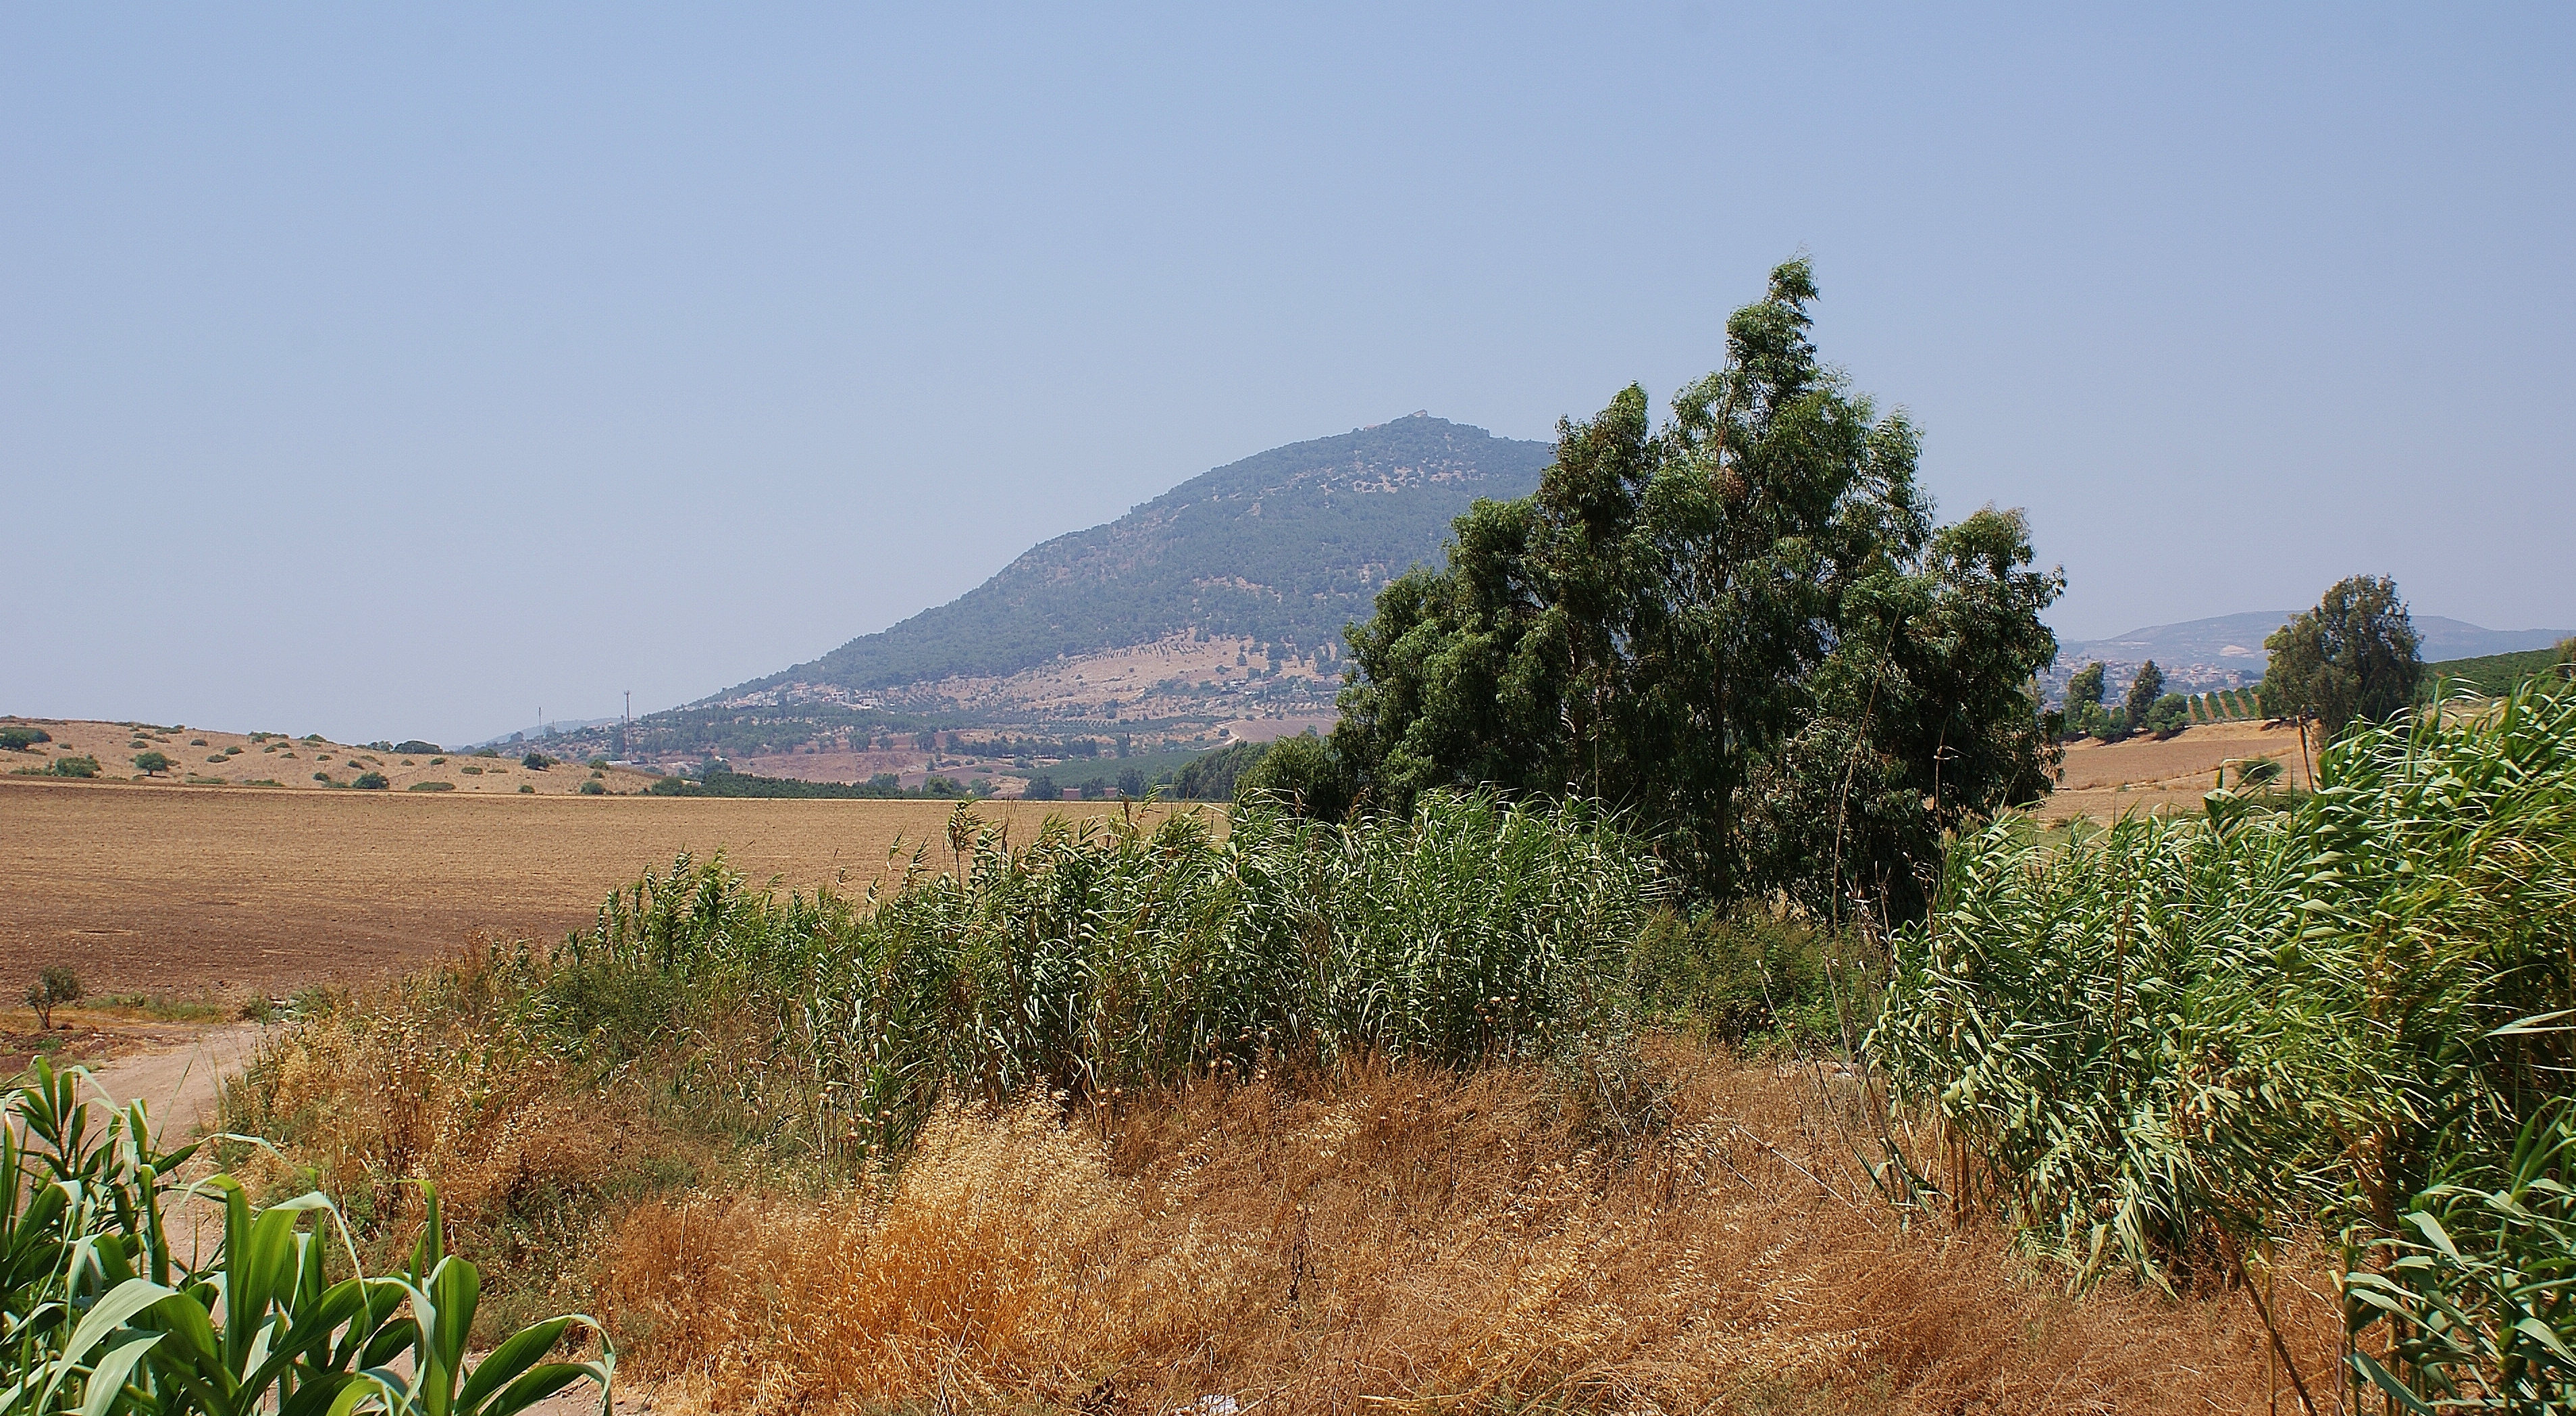 Postcard from Israel – Mount Tabor